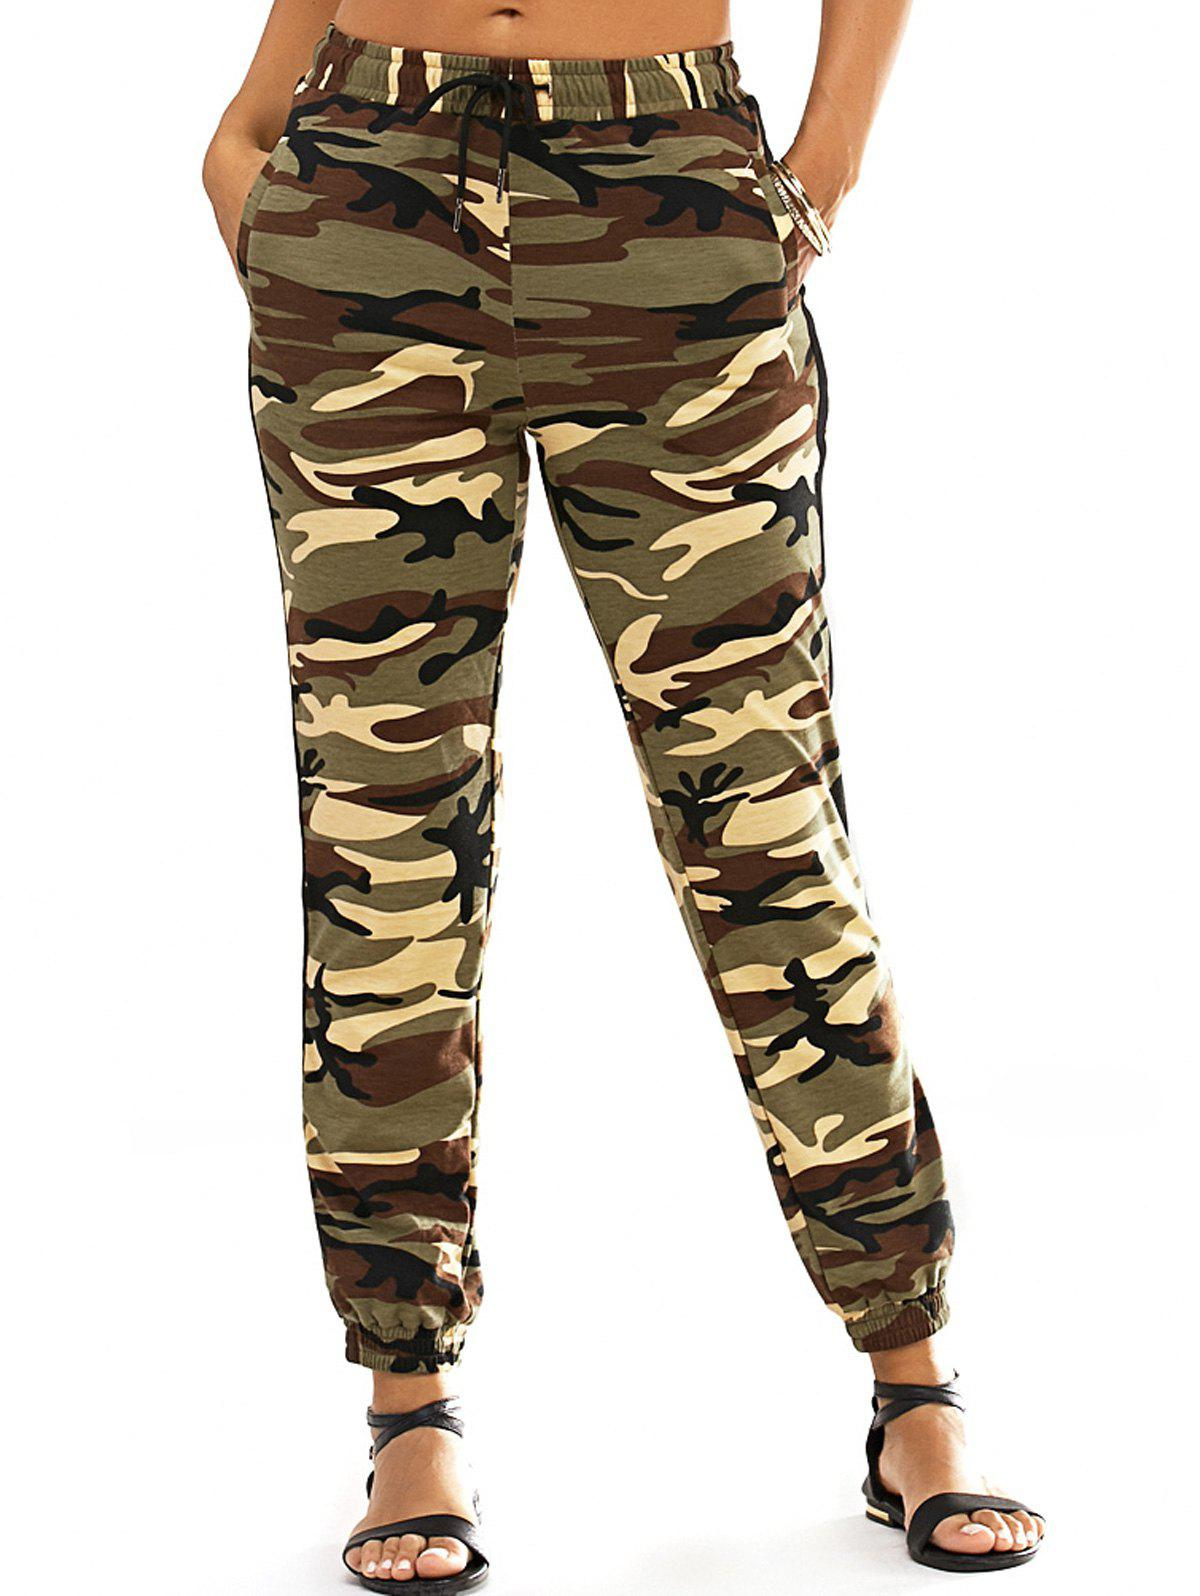 Fashionable Narrow Feet Lace-Up Camo Print Womens PantsWomen<br><br><br>Size: L<br>Color: ARMY GREEN CAMOUFLAGE